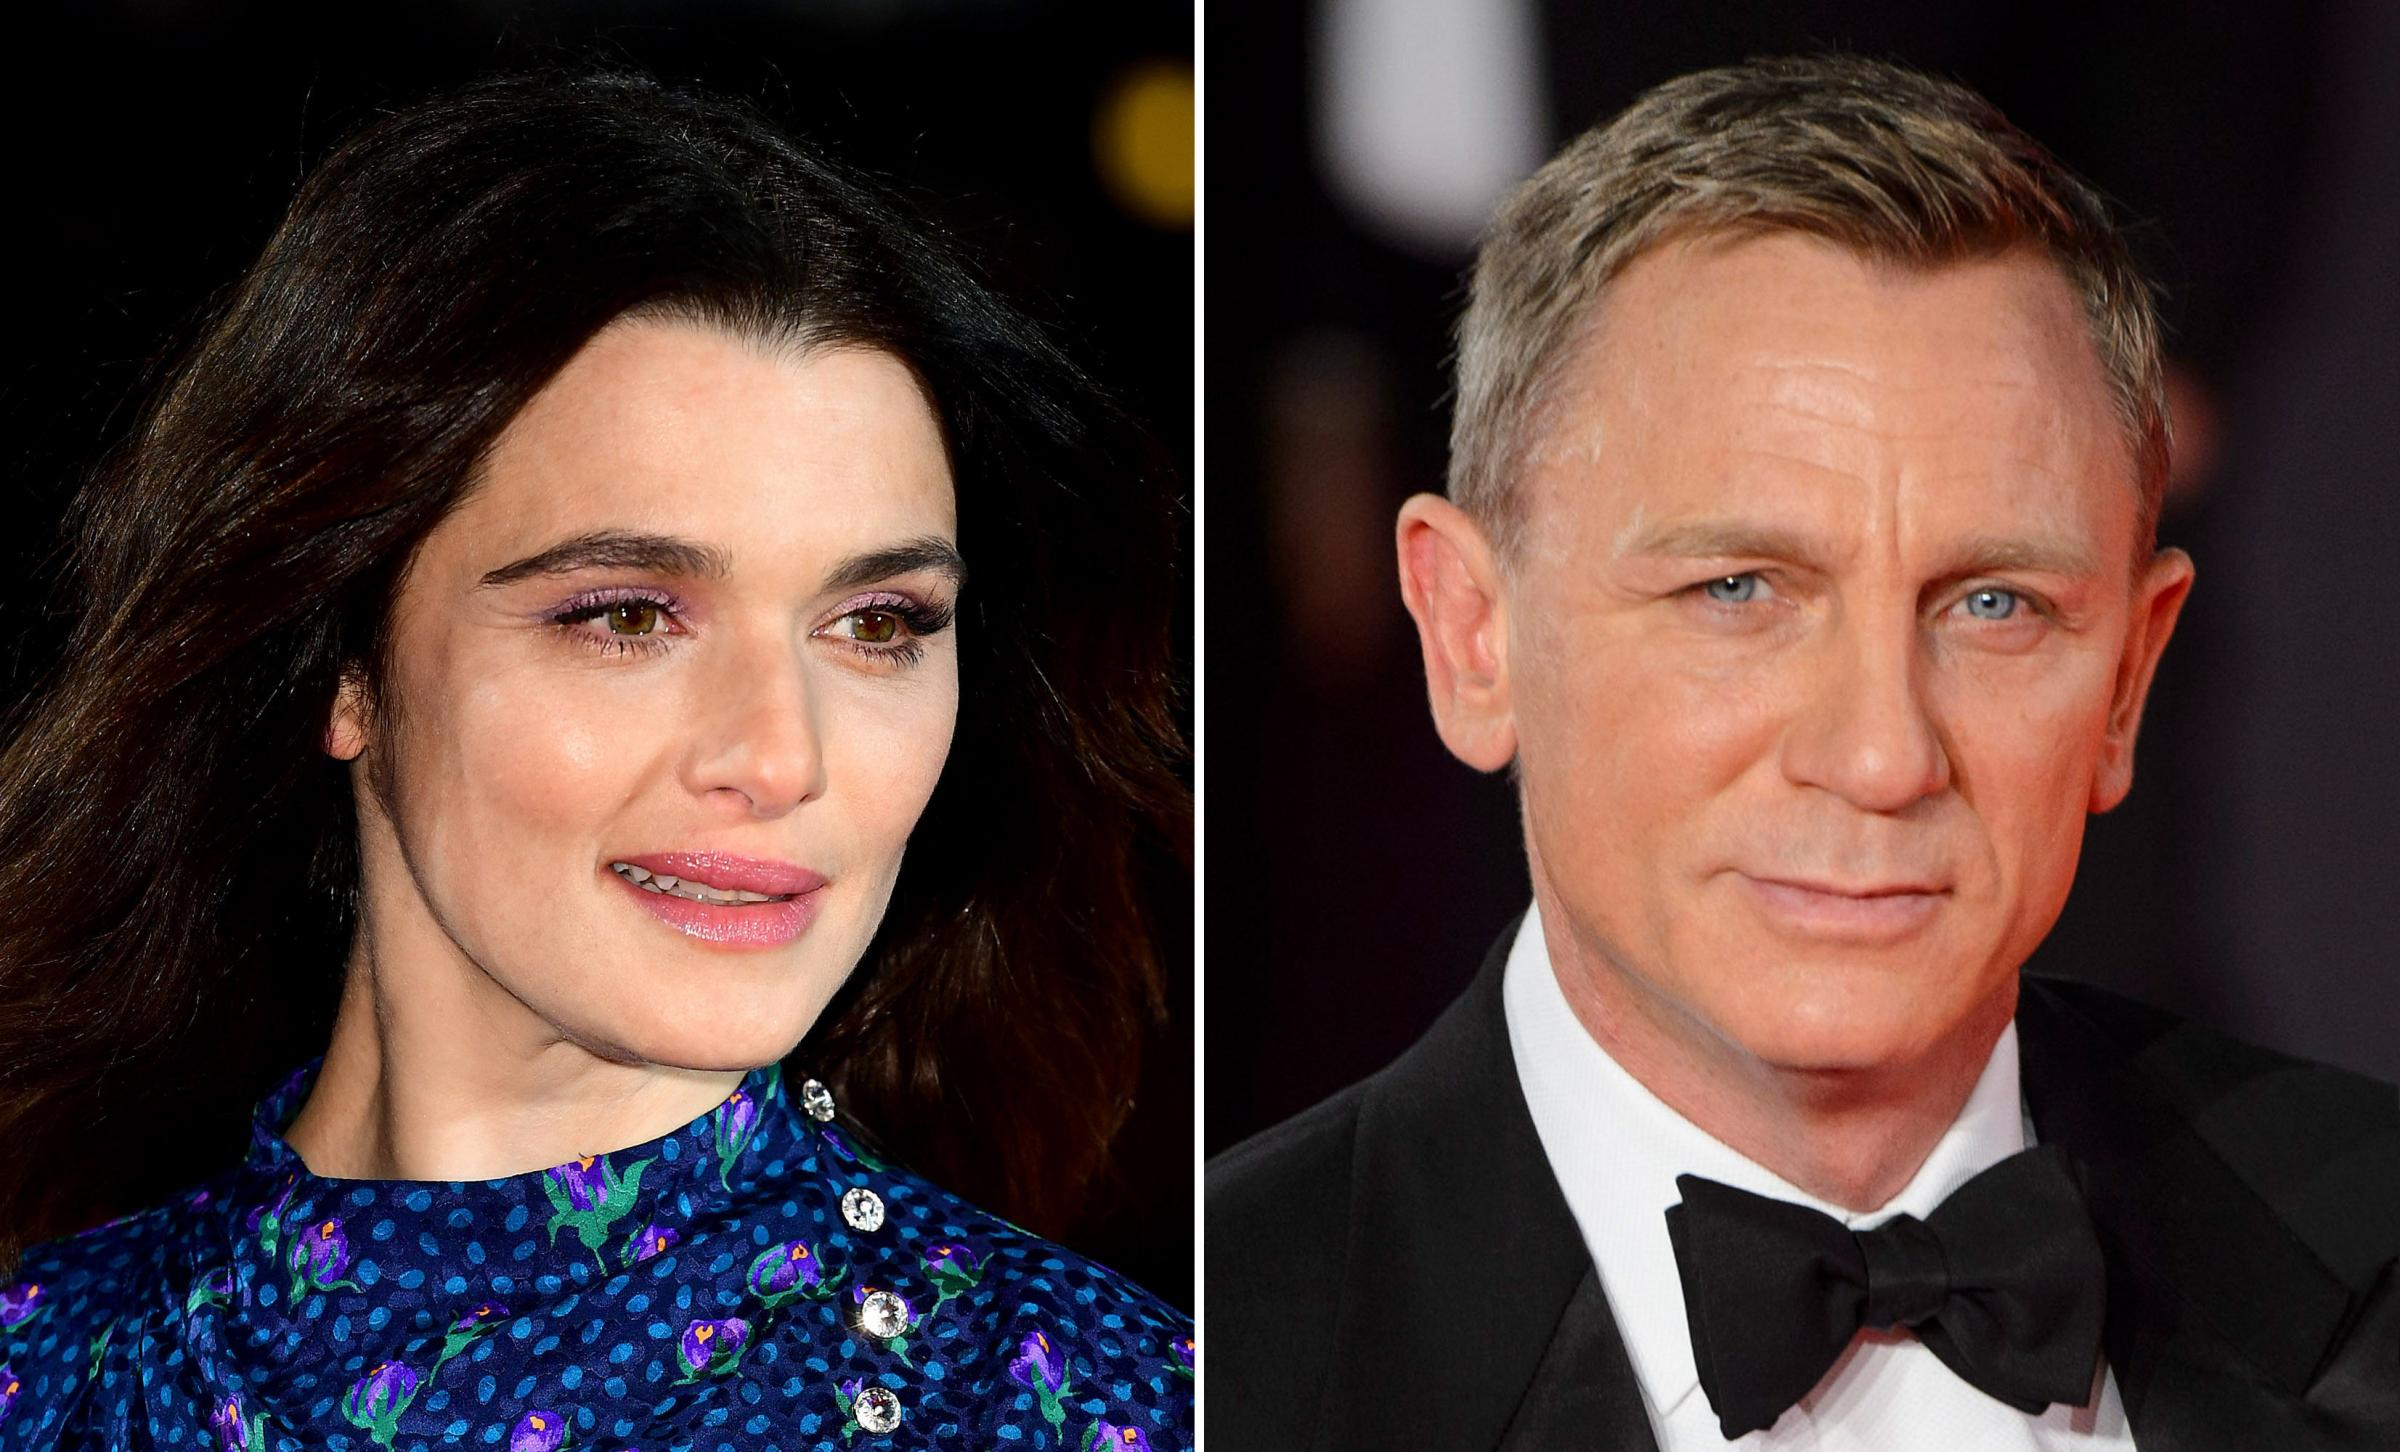 Rachel Weisz and Daniel Craig are expecting their first child together (Picture: PA/PA Wire)